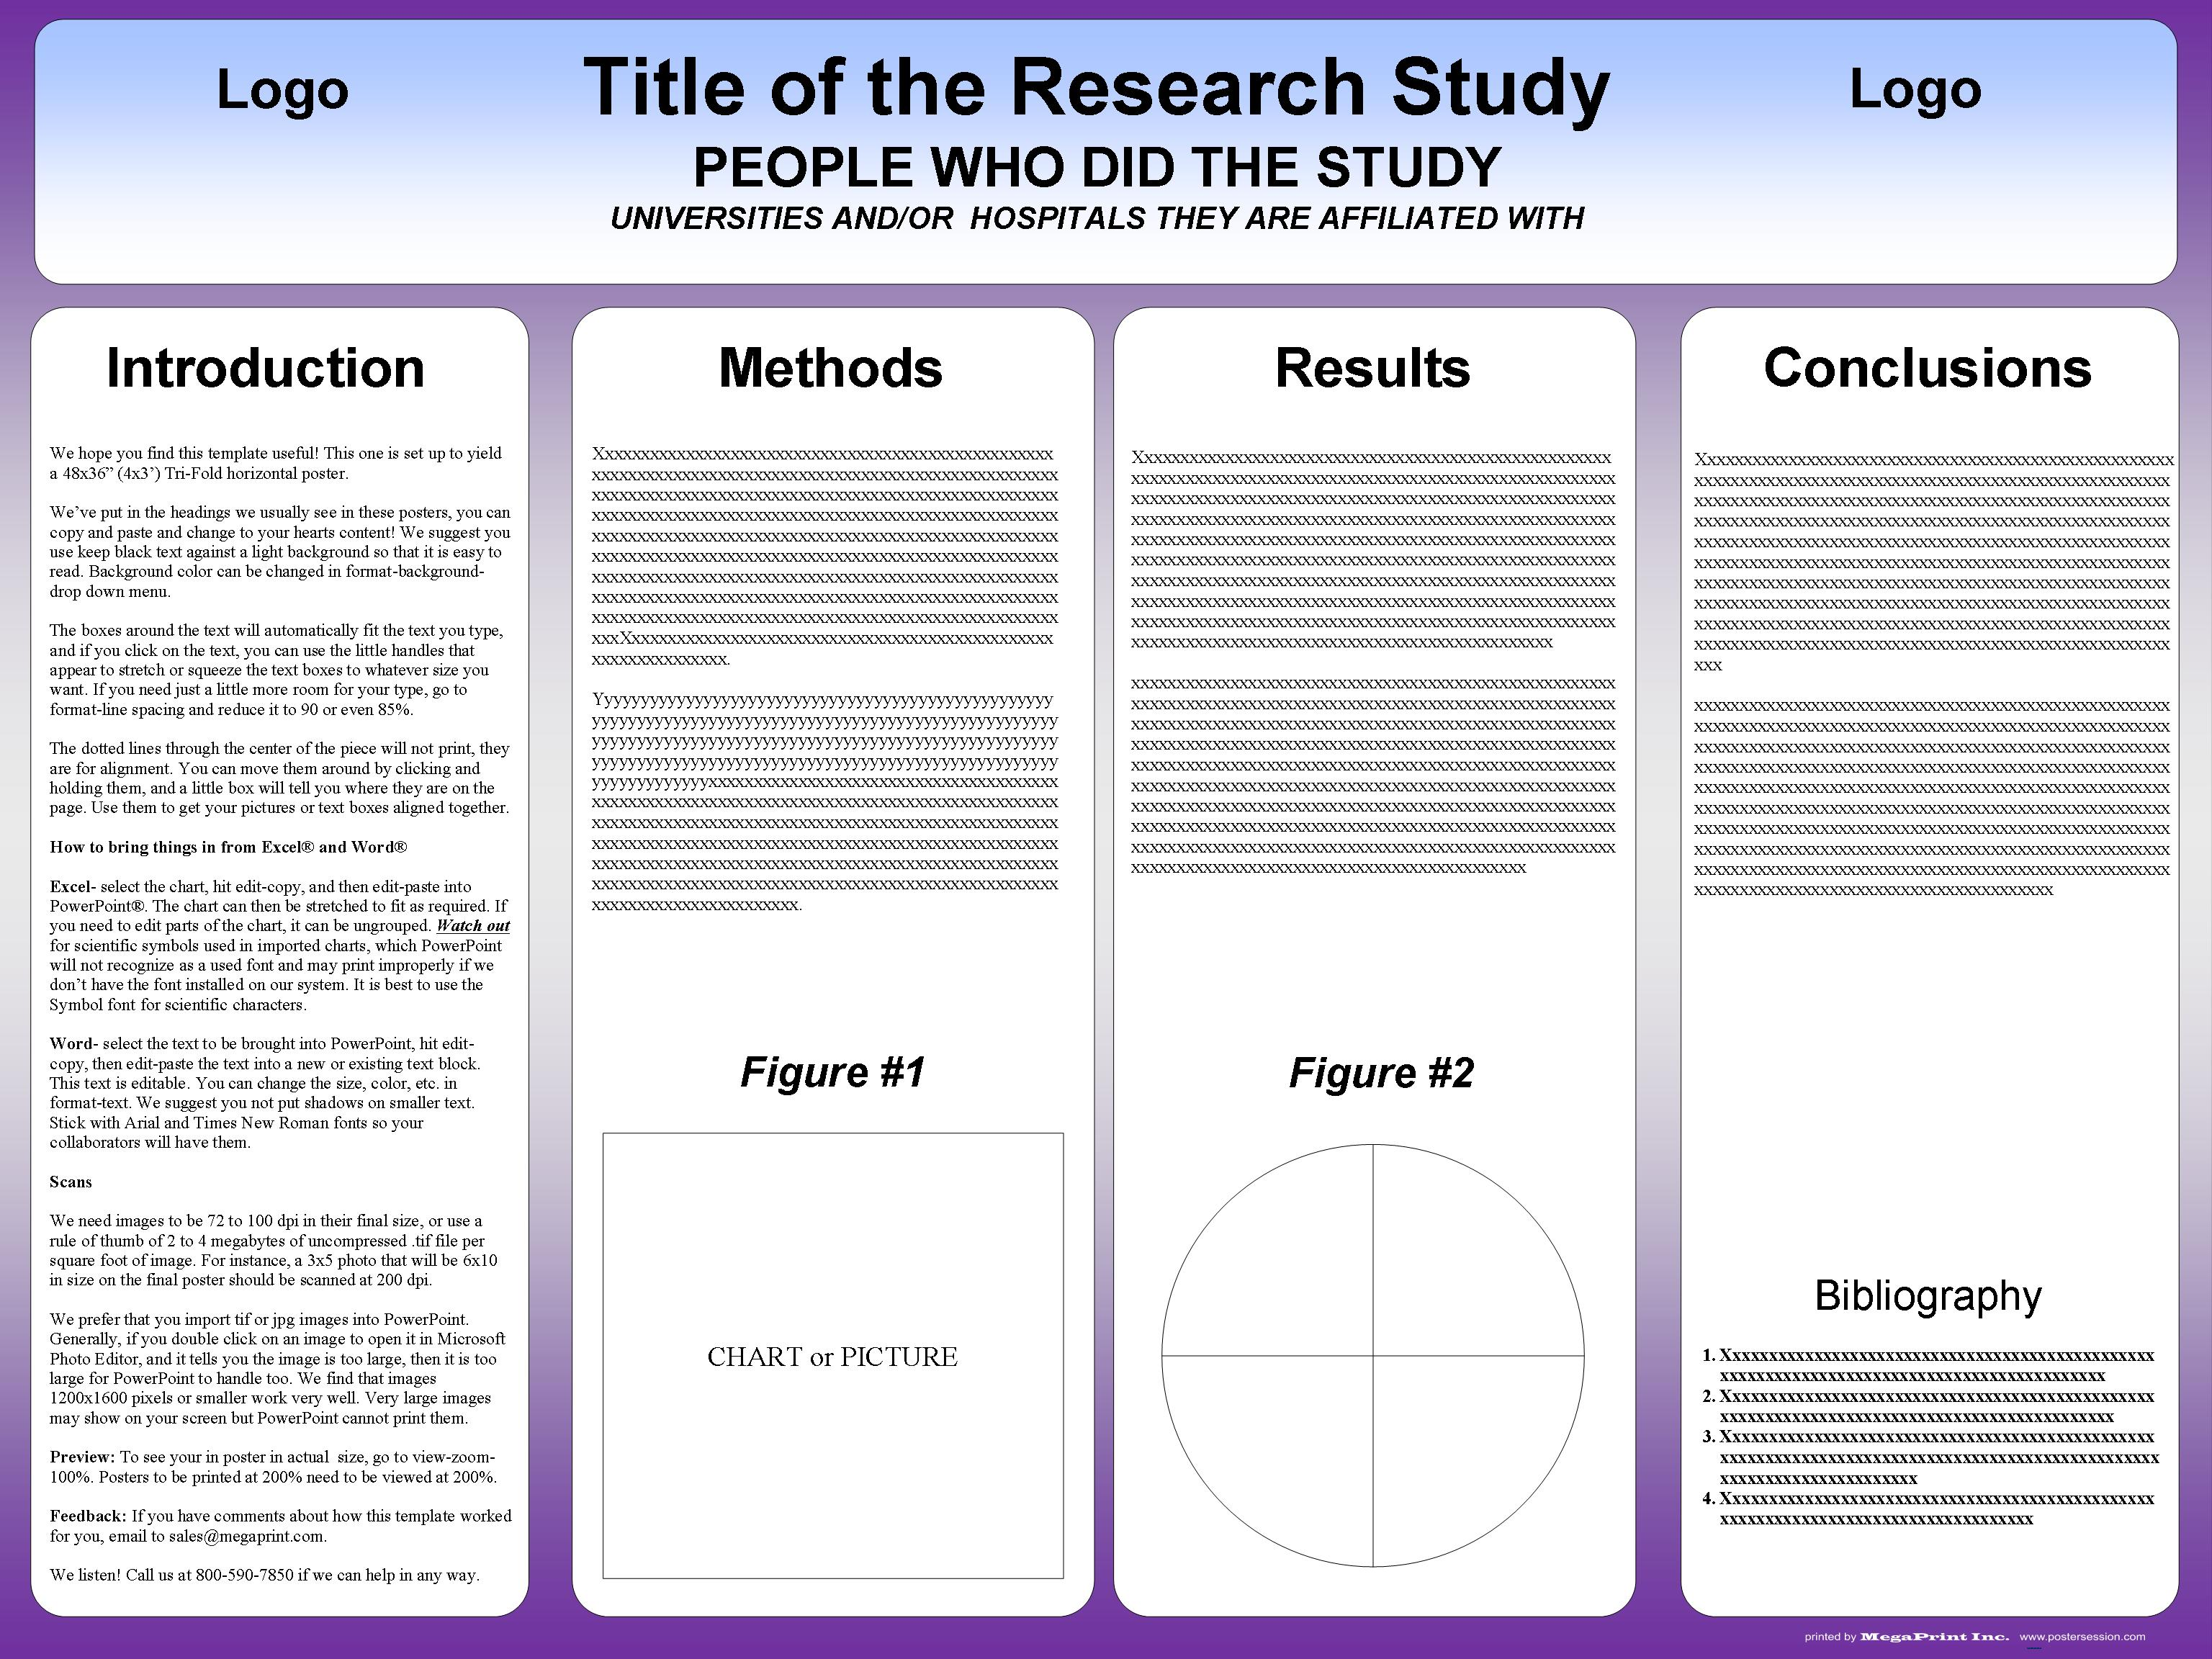 research poster template microsoft word sample resumes sample research poster template microsoft word research poster templates in microsoft word adobe 36x48trifoldtemplate2purple